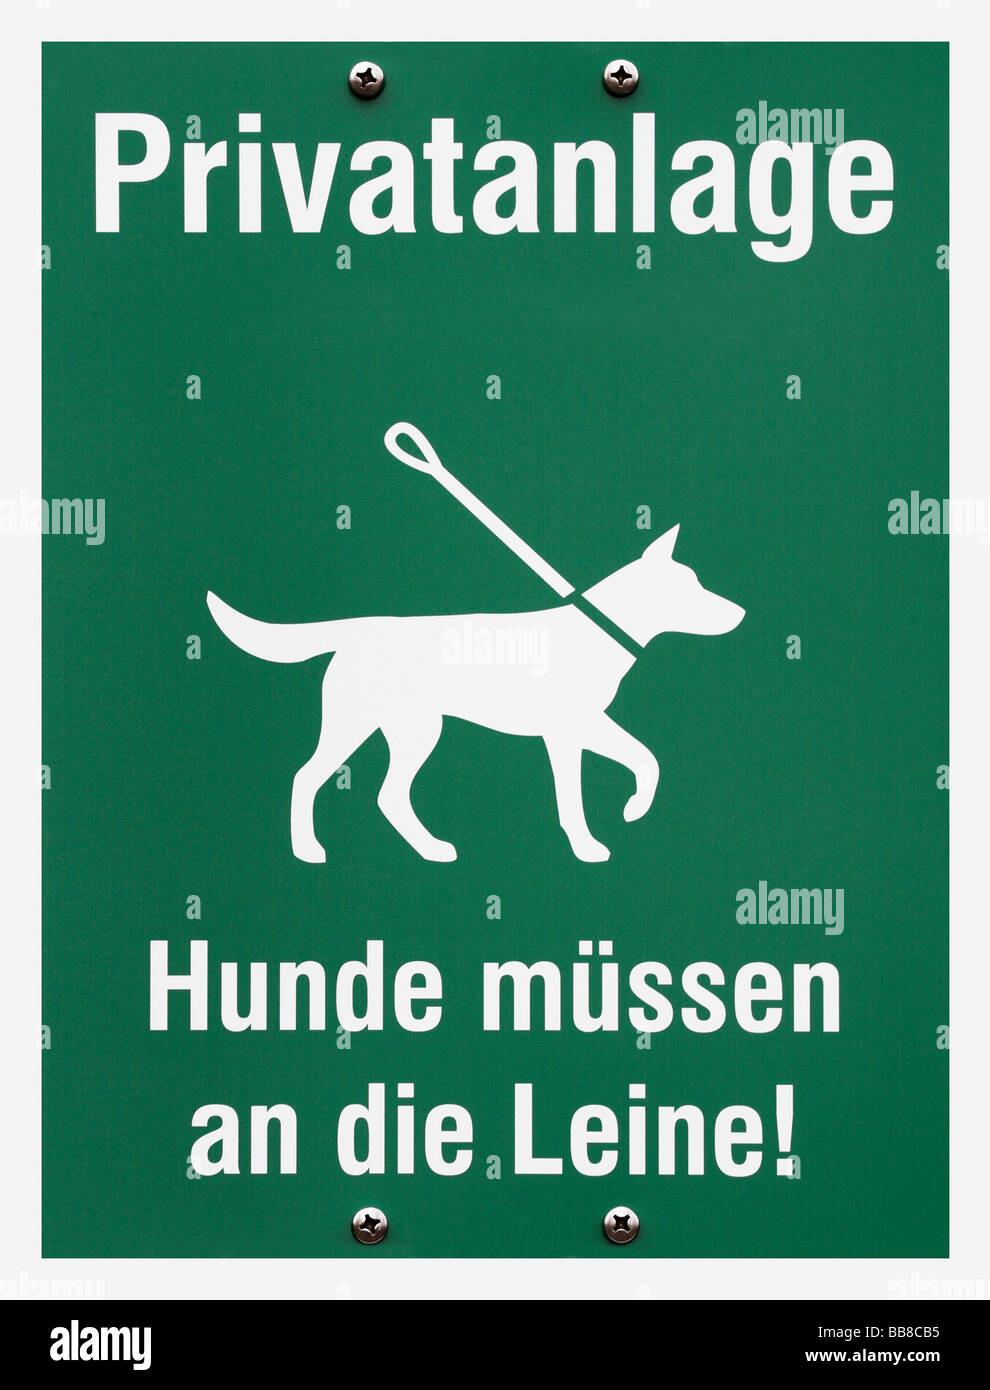 Instruction plate: private premises, lettering 'Hunde muessen an die Leine!', German for 'dogs must - Stock Image